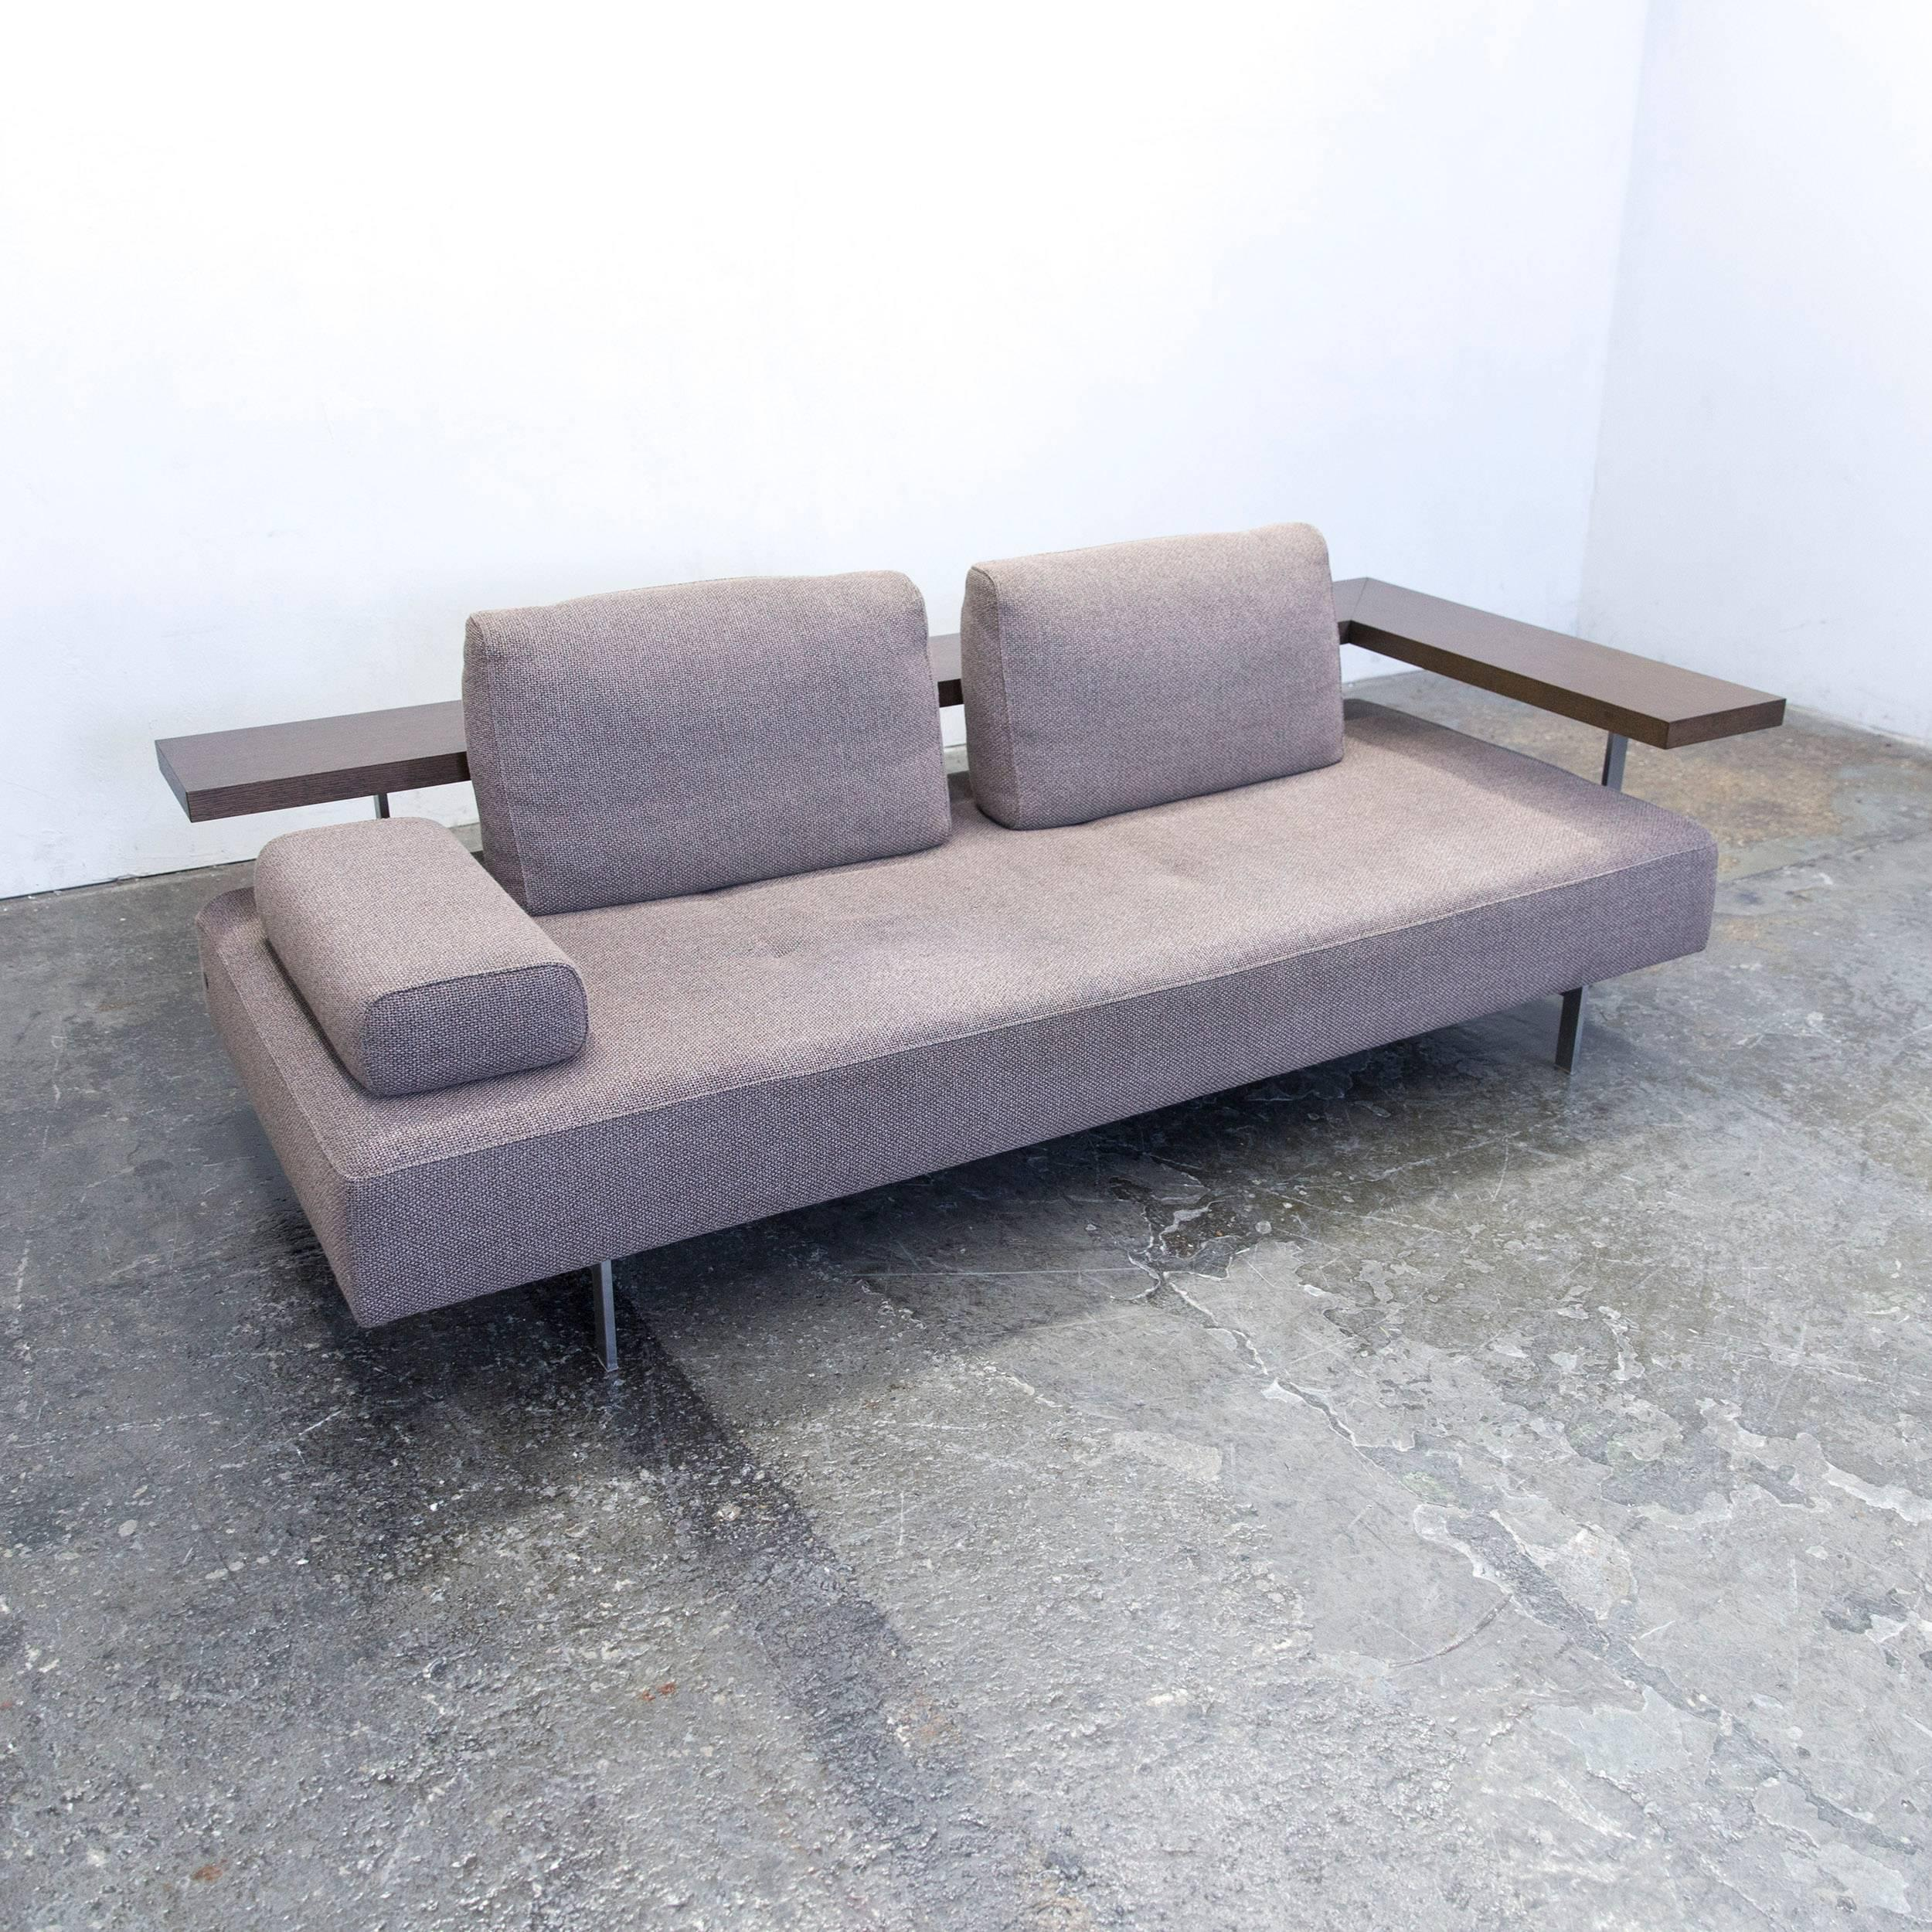 Rolf Benz Dono 6100 Designer Sofa Grey Fabric Function Two Seat Couch Modern  2